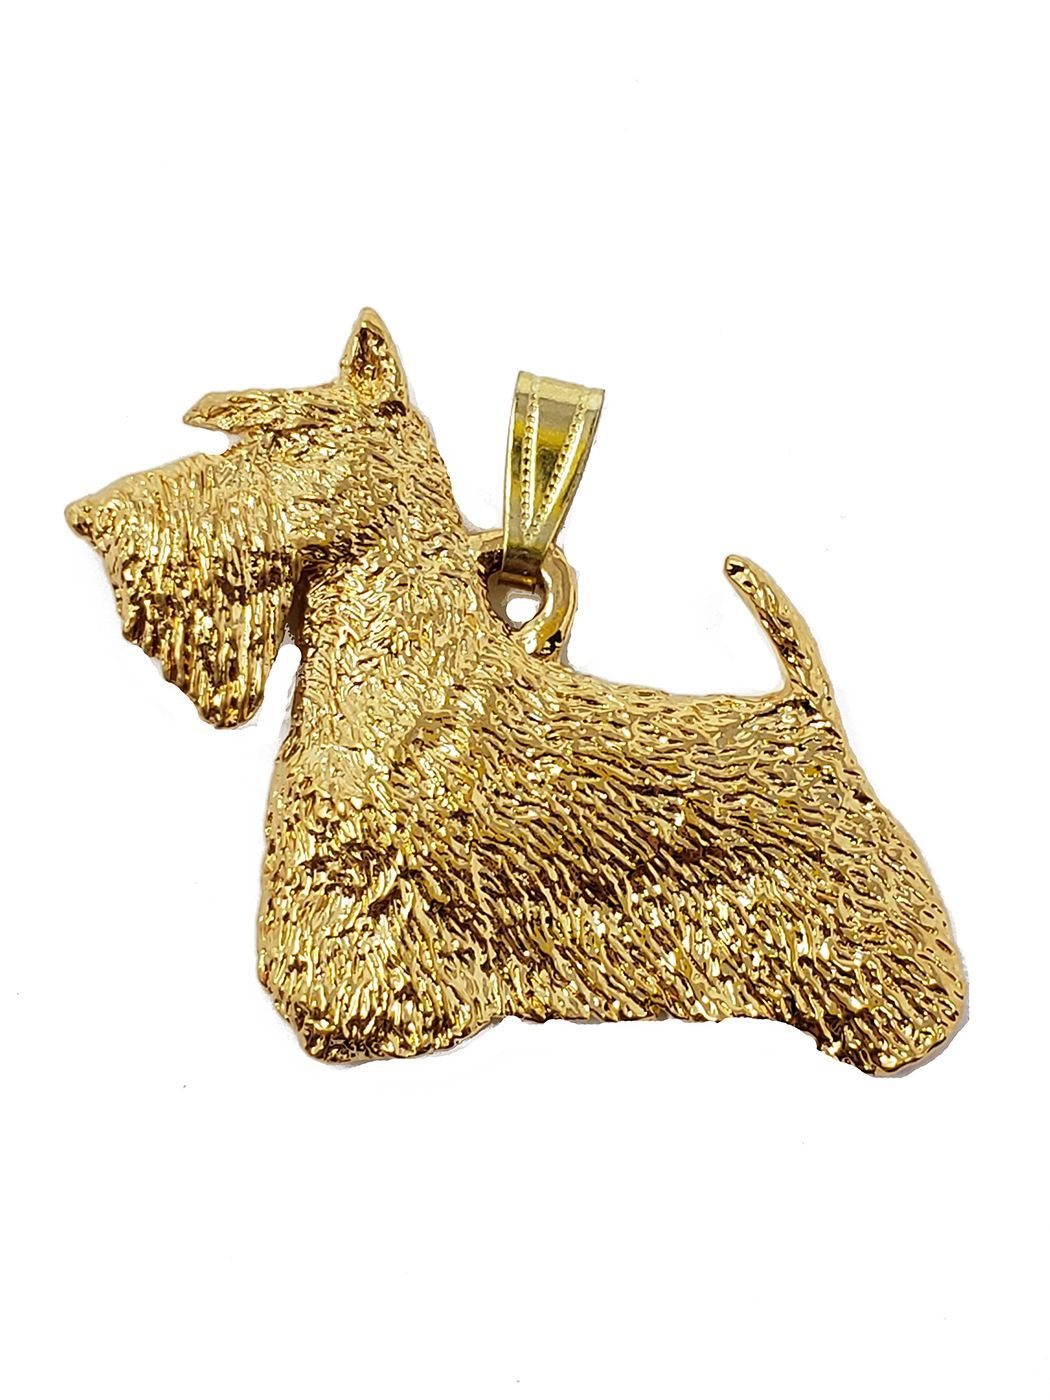 Scottish Terrier 24K Gold Plated Pendant